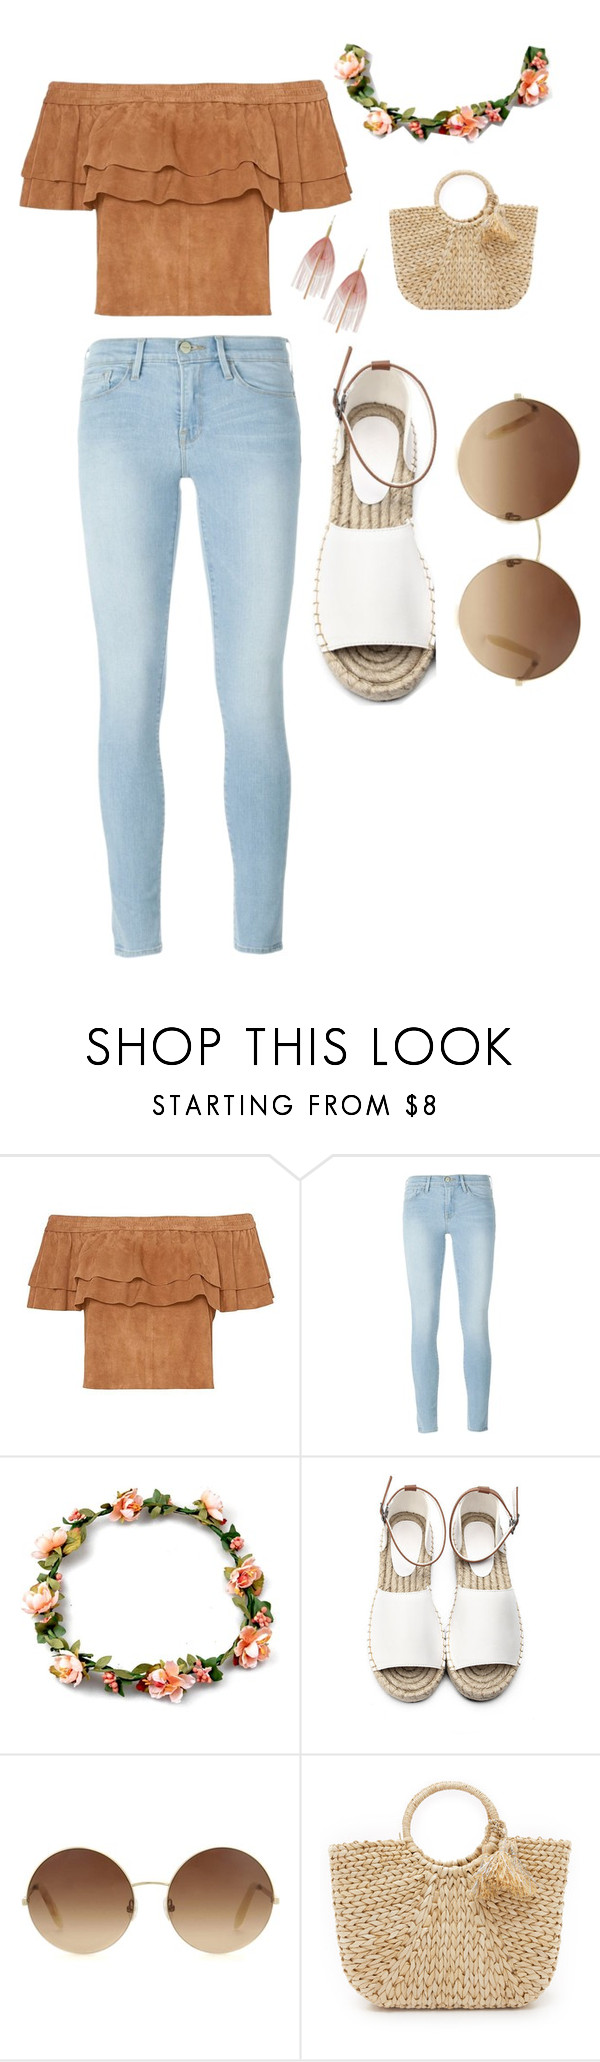 """""""Untitled #28"""" by sandrabcmoonen ❤ liked on Polyvore featuring Frame, Victoria Beckham, Hat Attack and Serefina"""